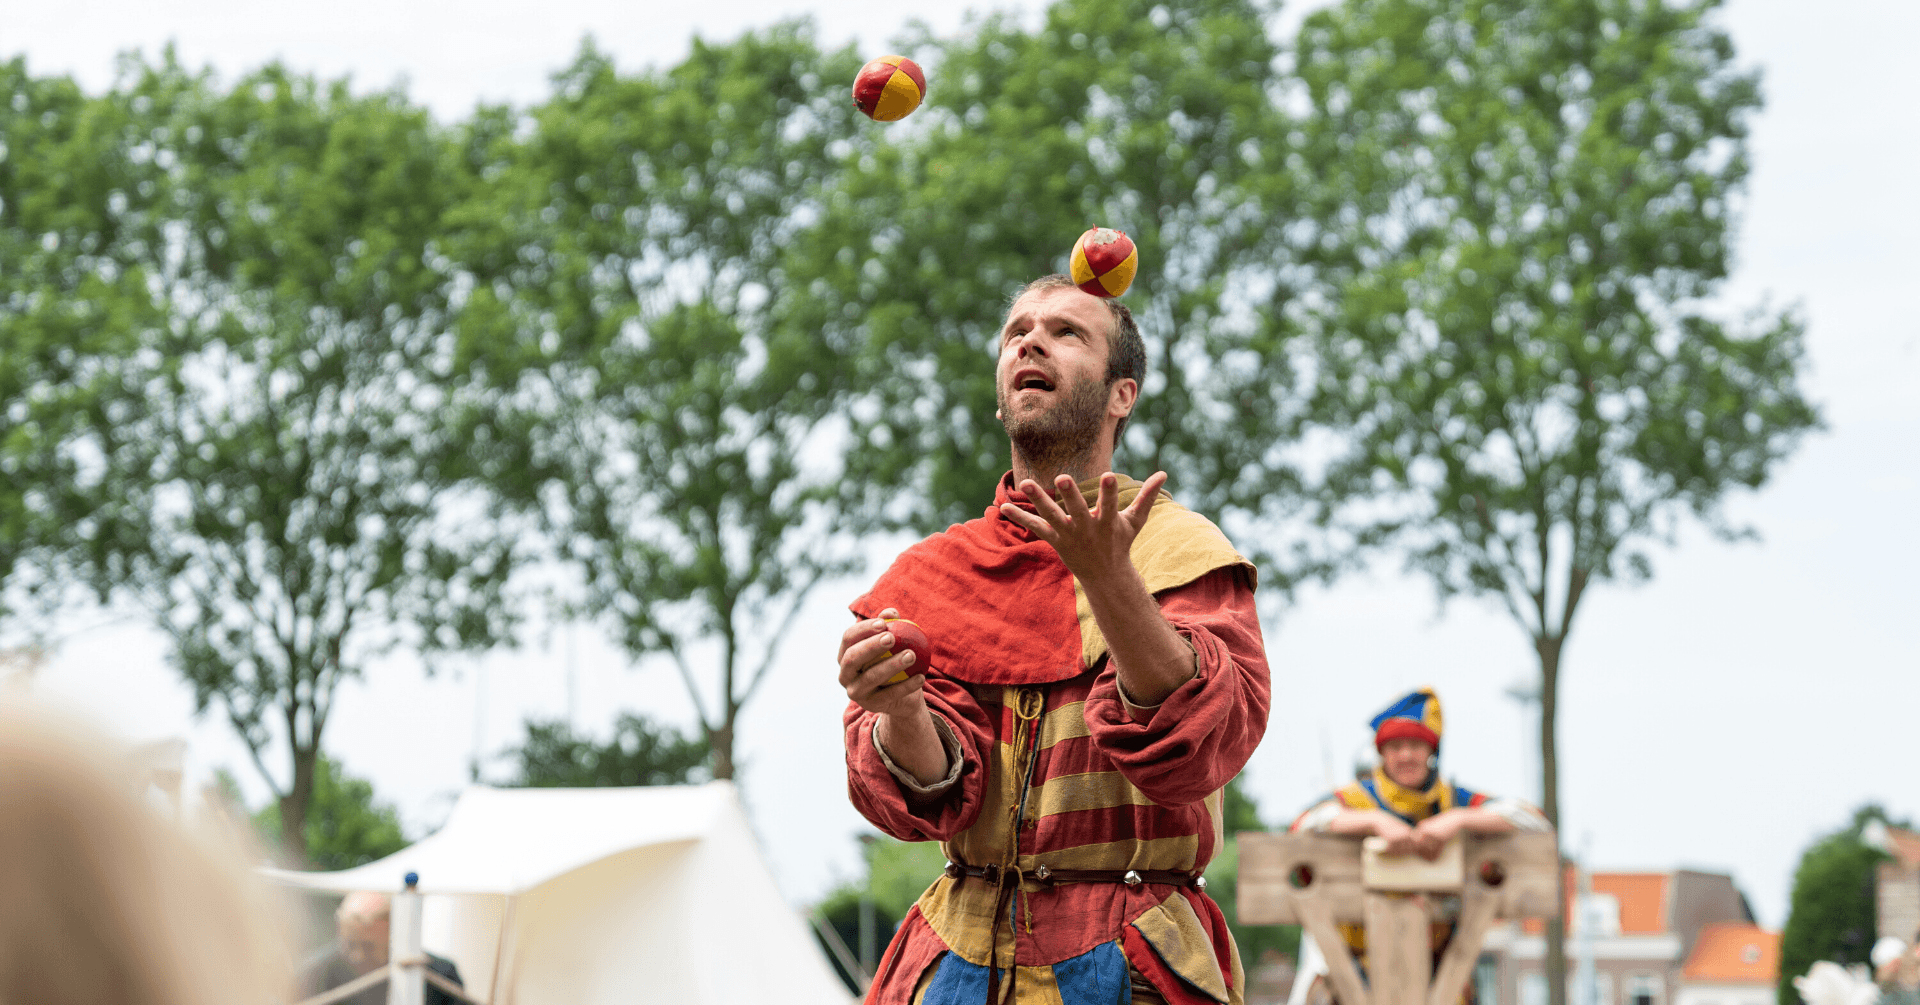 Radboud Castle-Juggling in the castle square by Magisch Verhaal-Photo credits Pascal van As